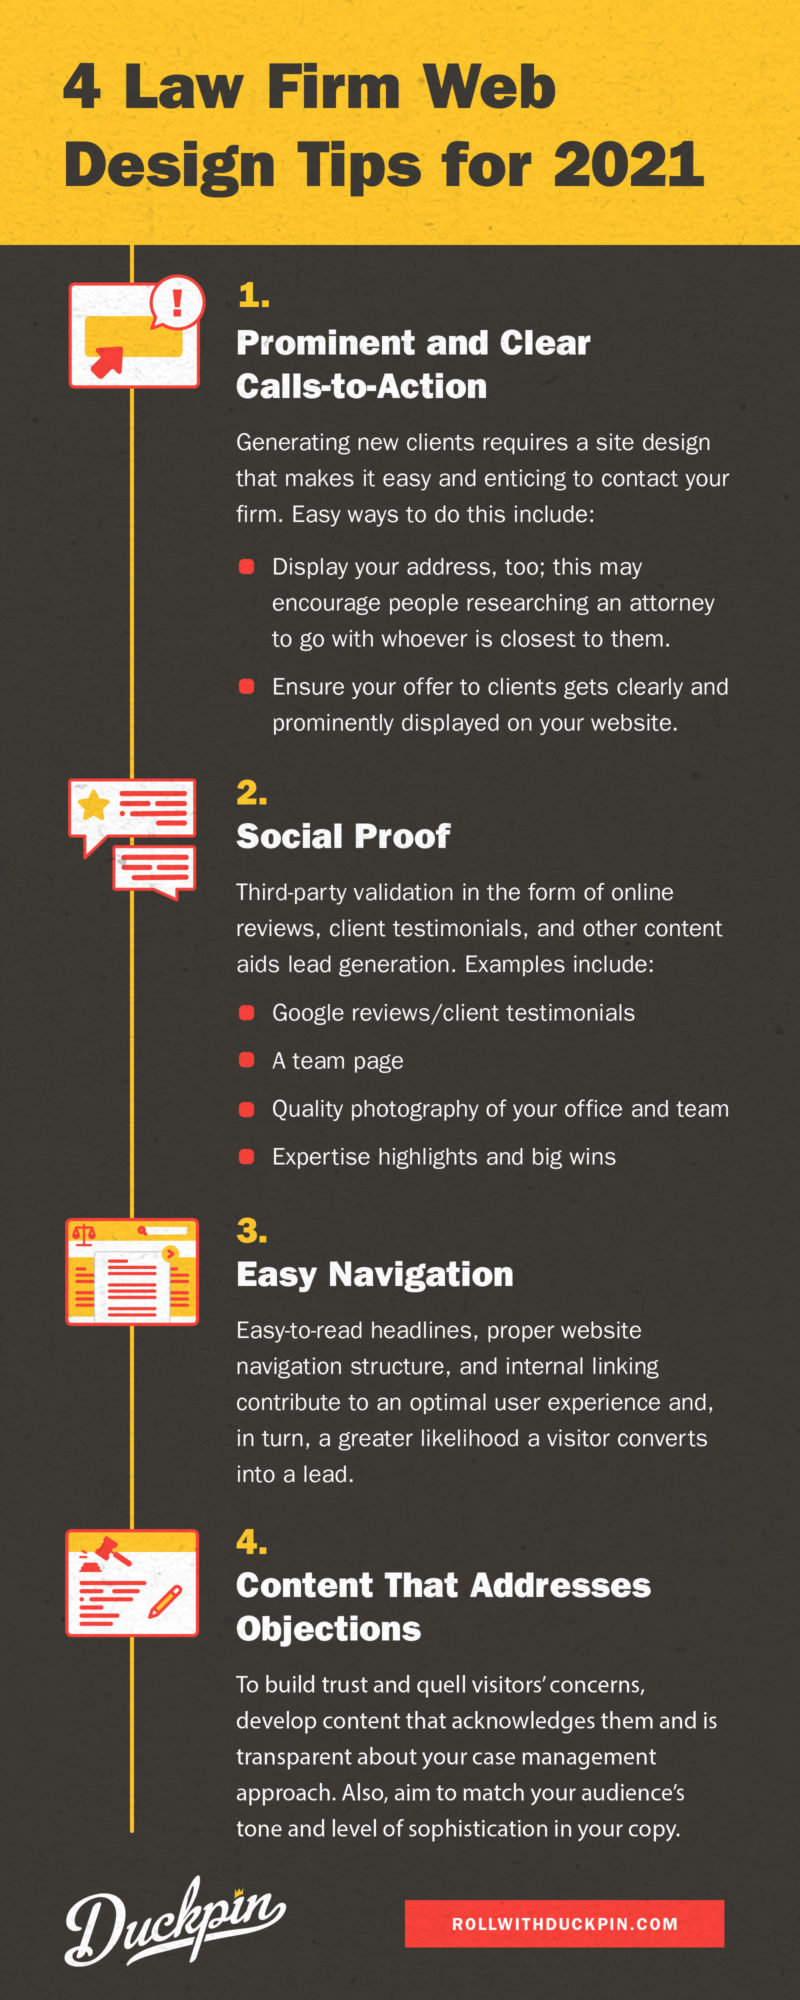 law firm web design tips infographic